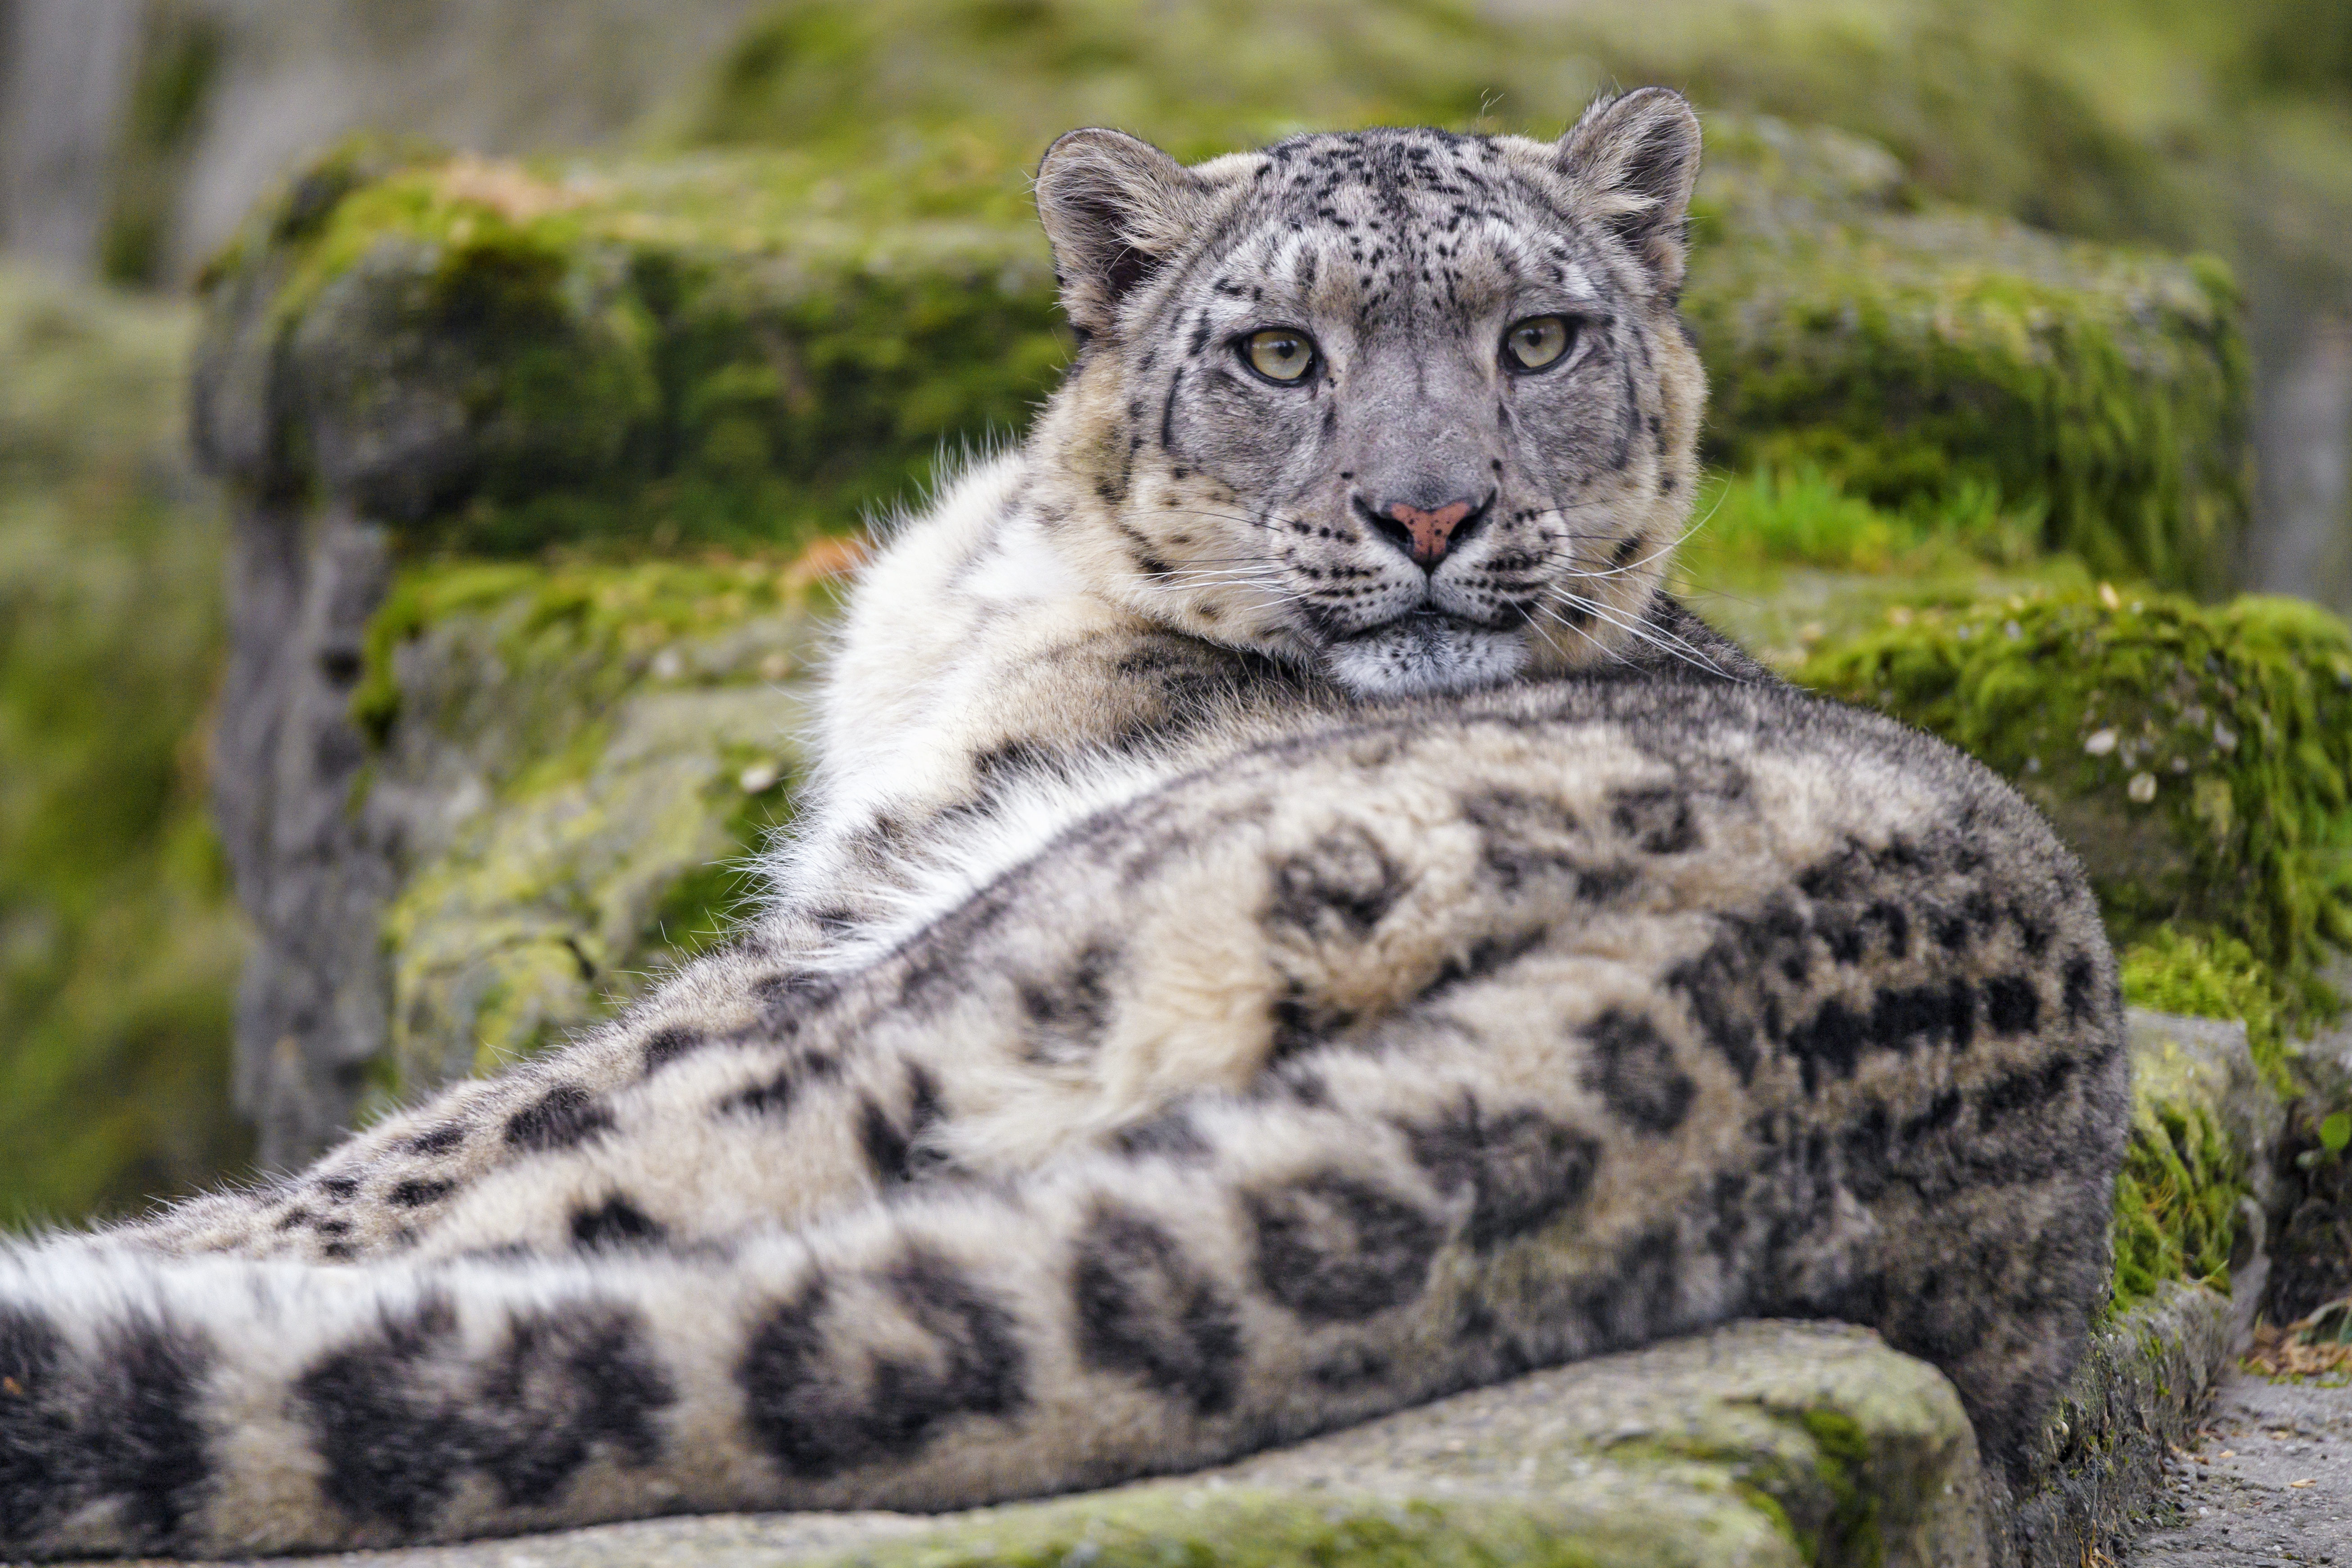 94128 download wallpaper Animals, Irbis, Animal, Sight, Opinion, Predator, Big Cat, Snow Leopard screensavers and pictures for free